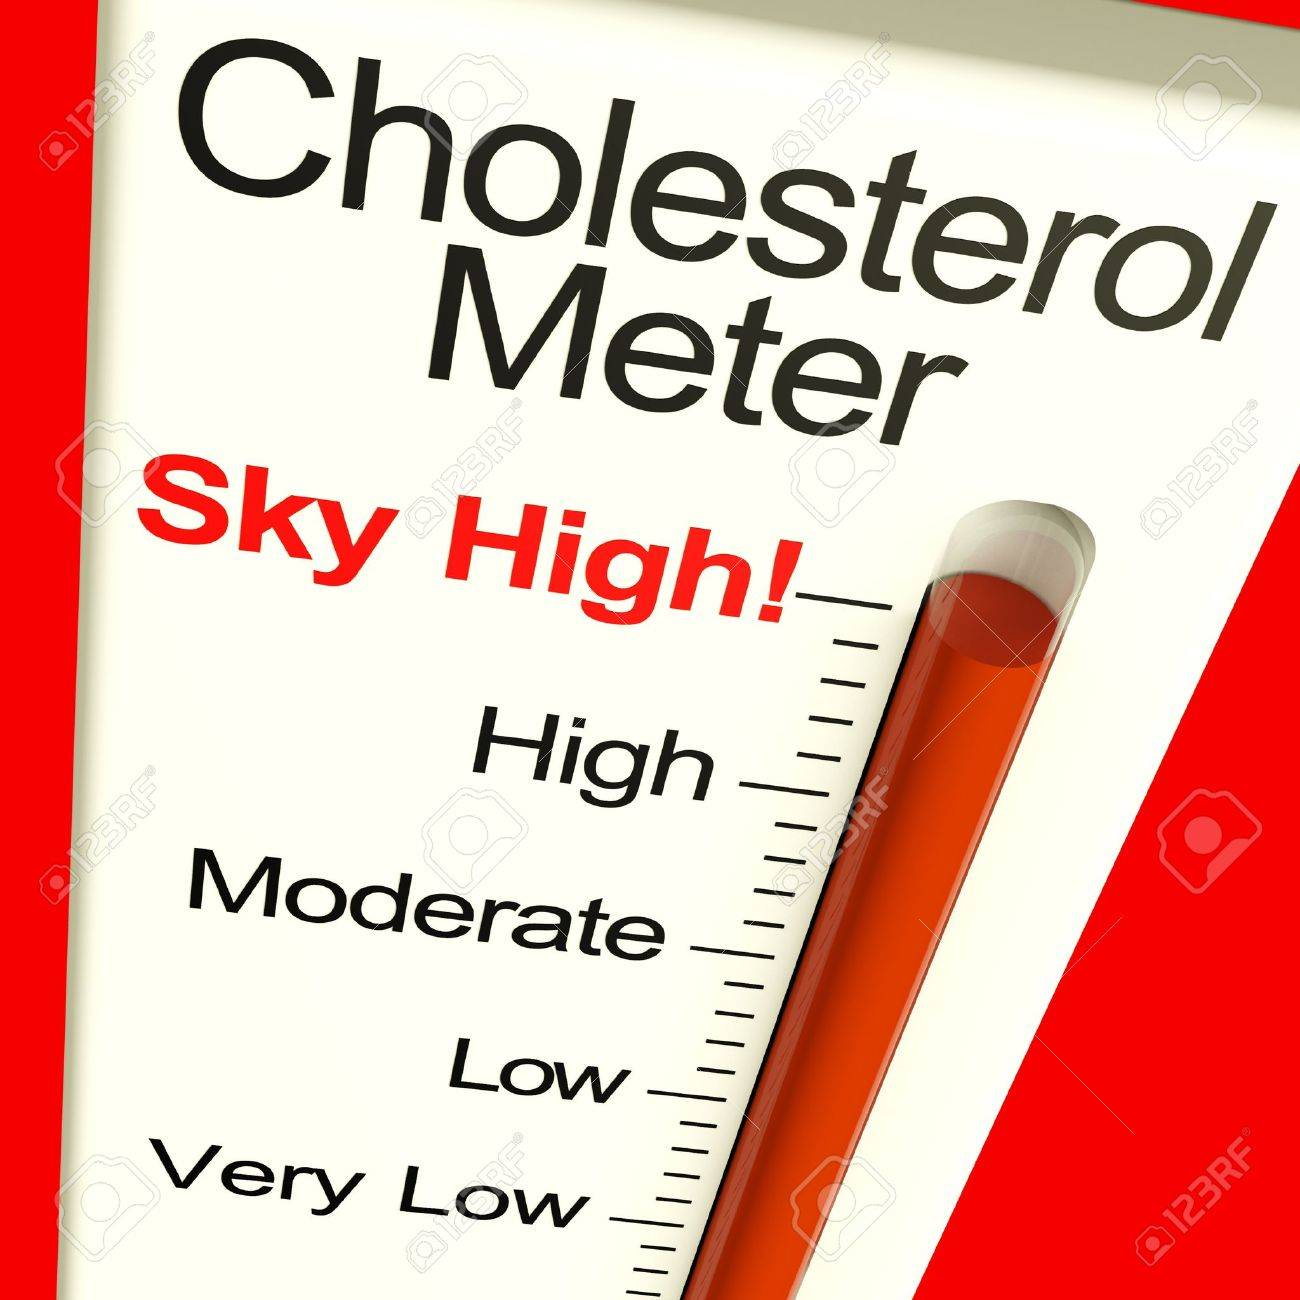 Cholesterol Meter High Showing Unhealthy Fatty Diets Stock Photo - 11947994